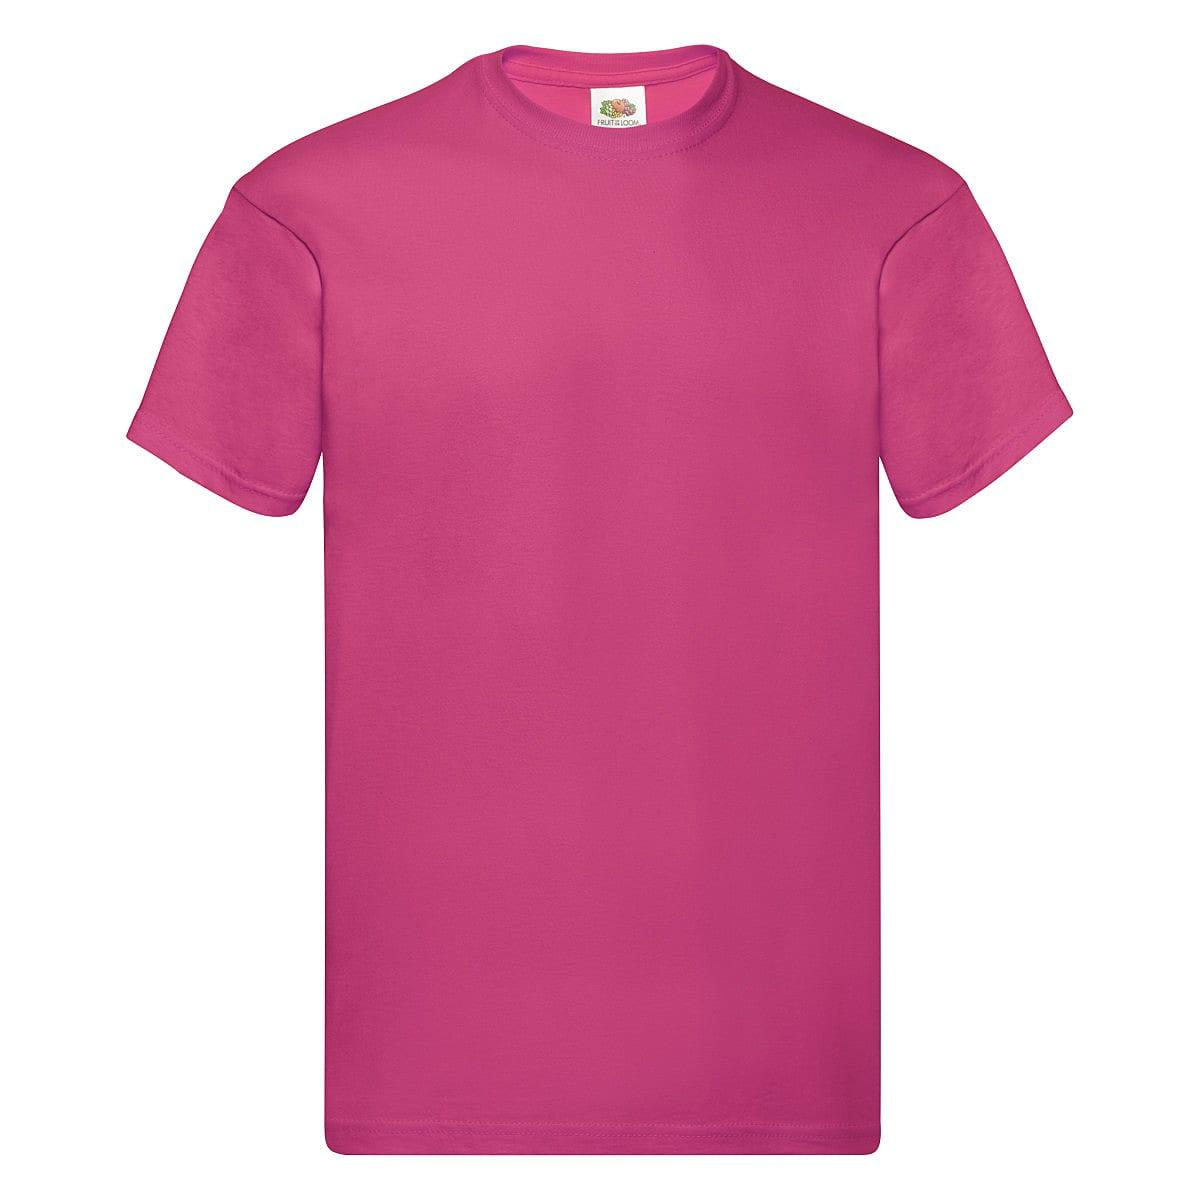 Fruit Of The Loom Original Full Cut T-Shirt in Fuchsia (Product Code: 61082)